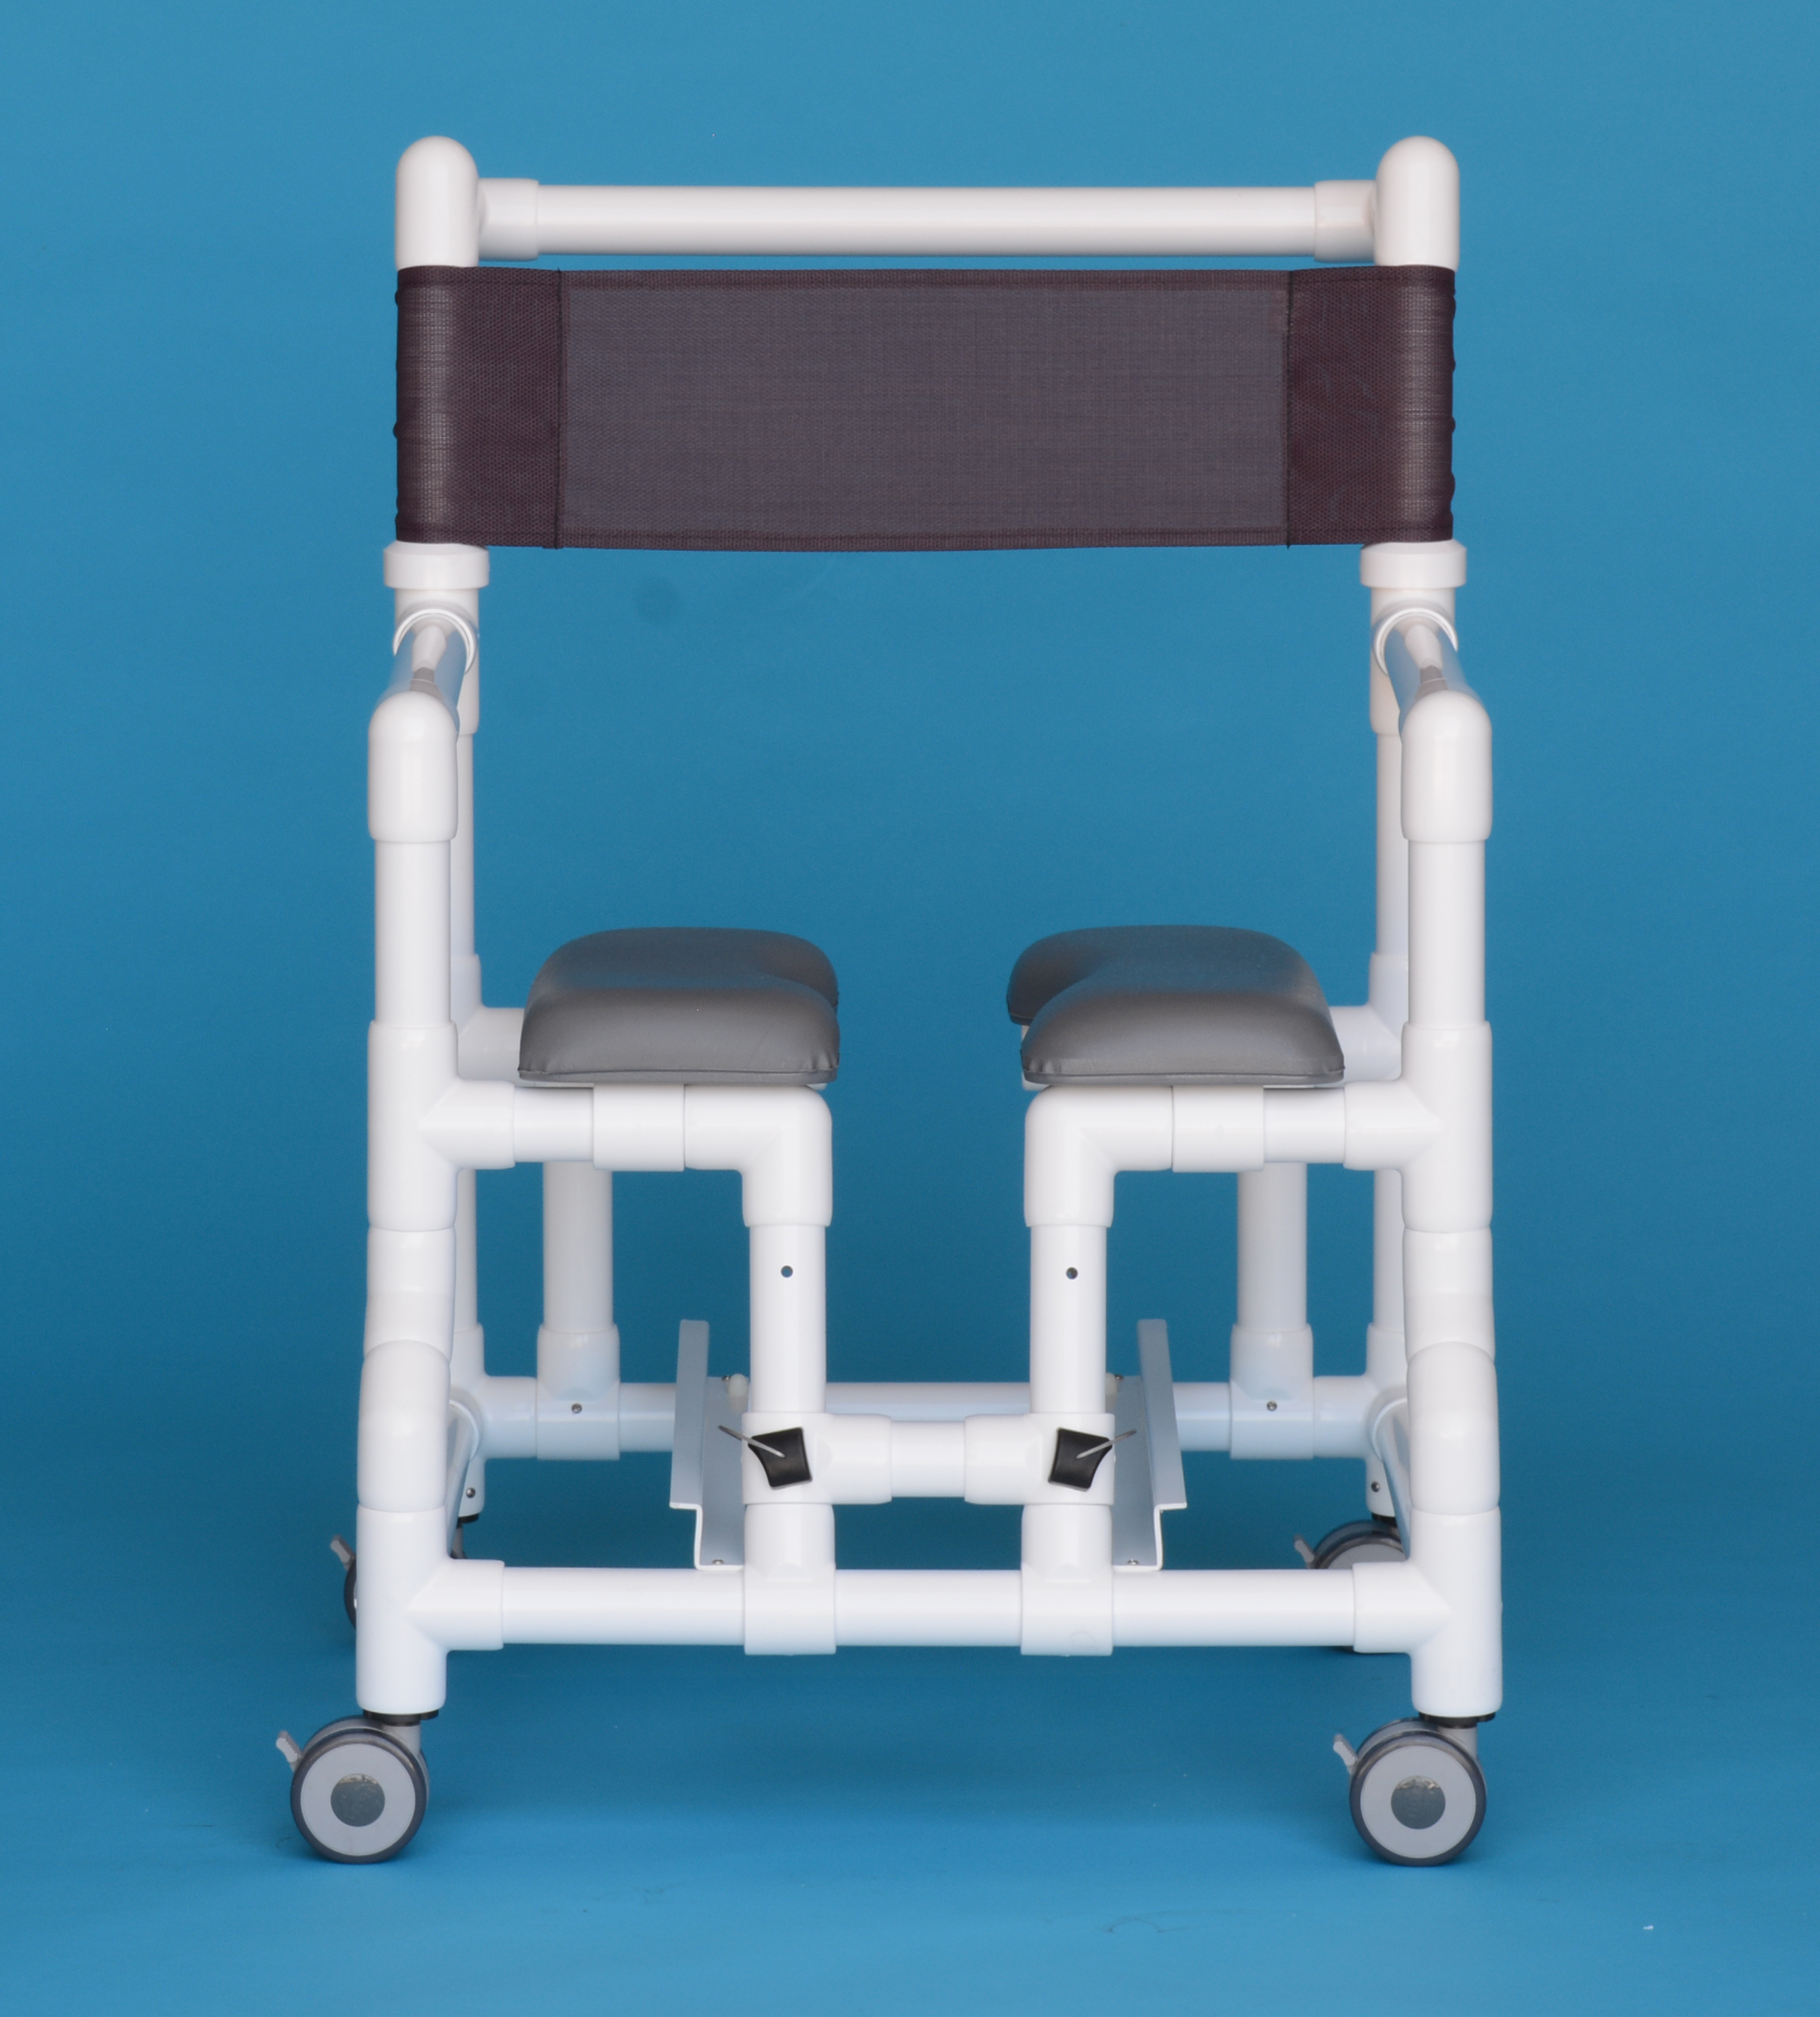 The Patented Storm Shower Chair (Patent No. 8,677.520 B2) is designed to give total access to a patient during cleaning and provide a safer bathing experience, and prevents the risk of spreading E.Coli . The split sear design allows for a more comfortable and dignified experience for the patient that is easier for the staff.